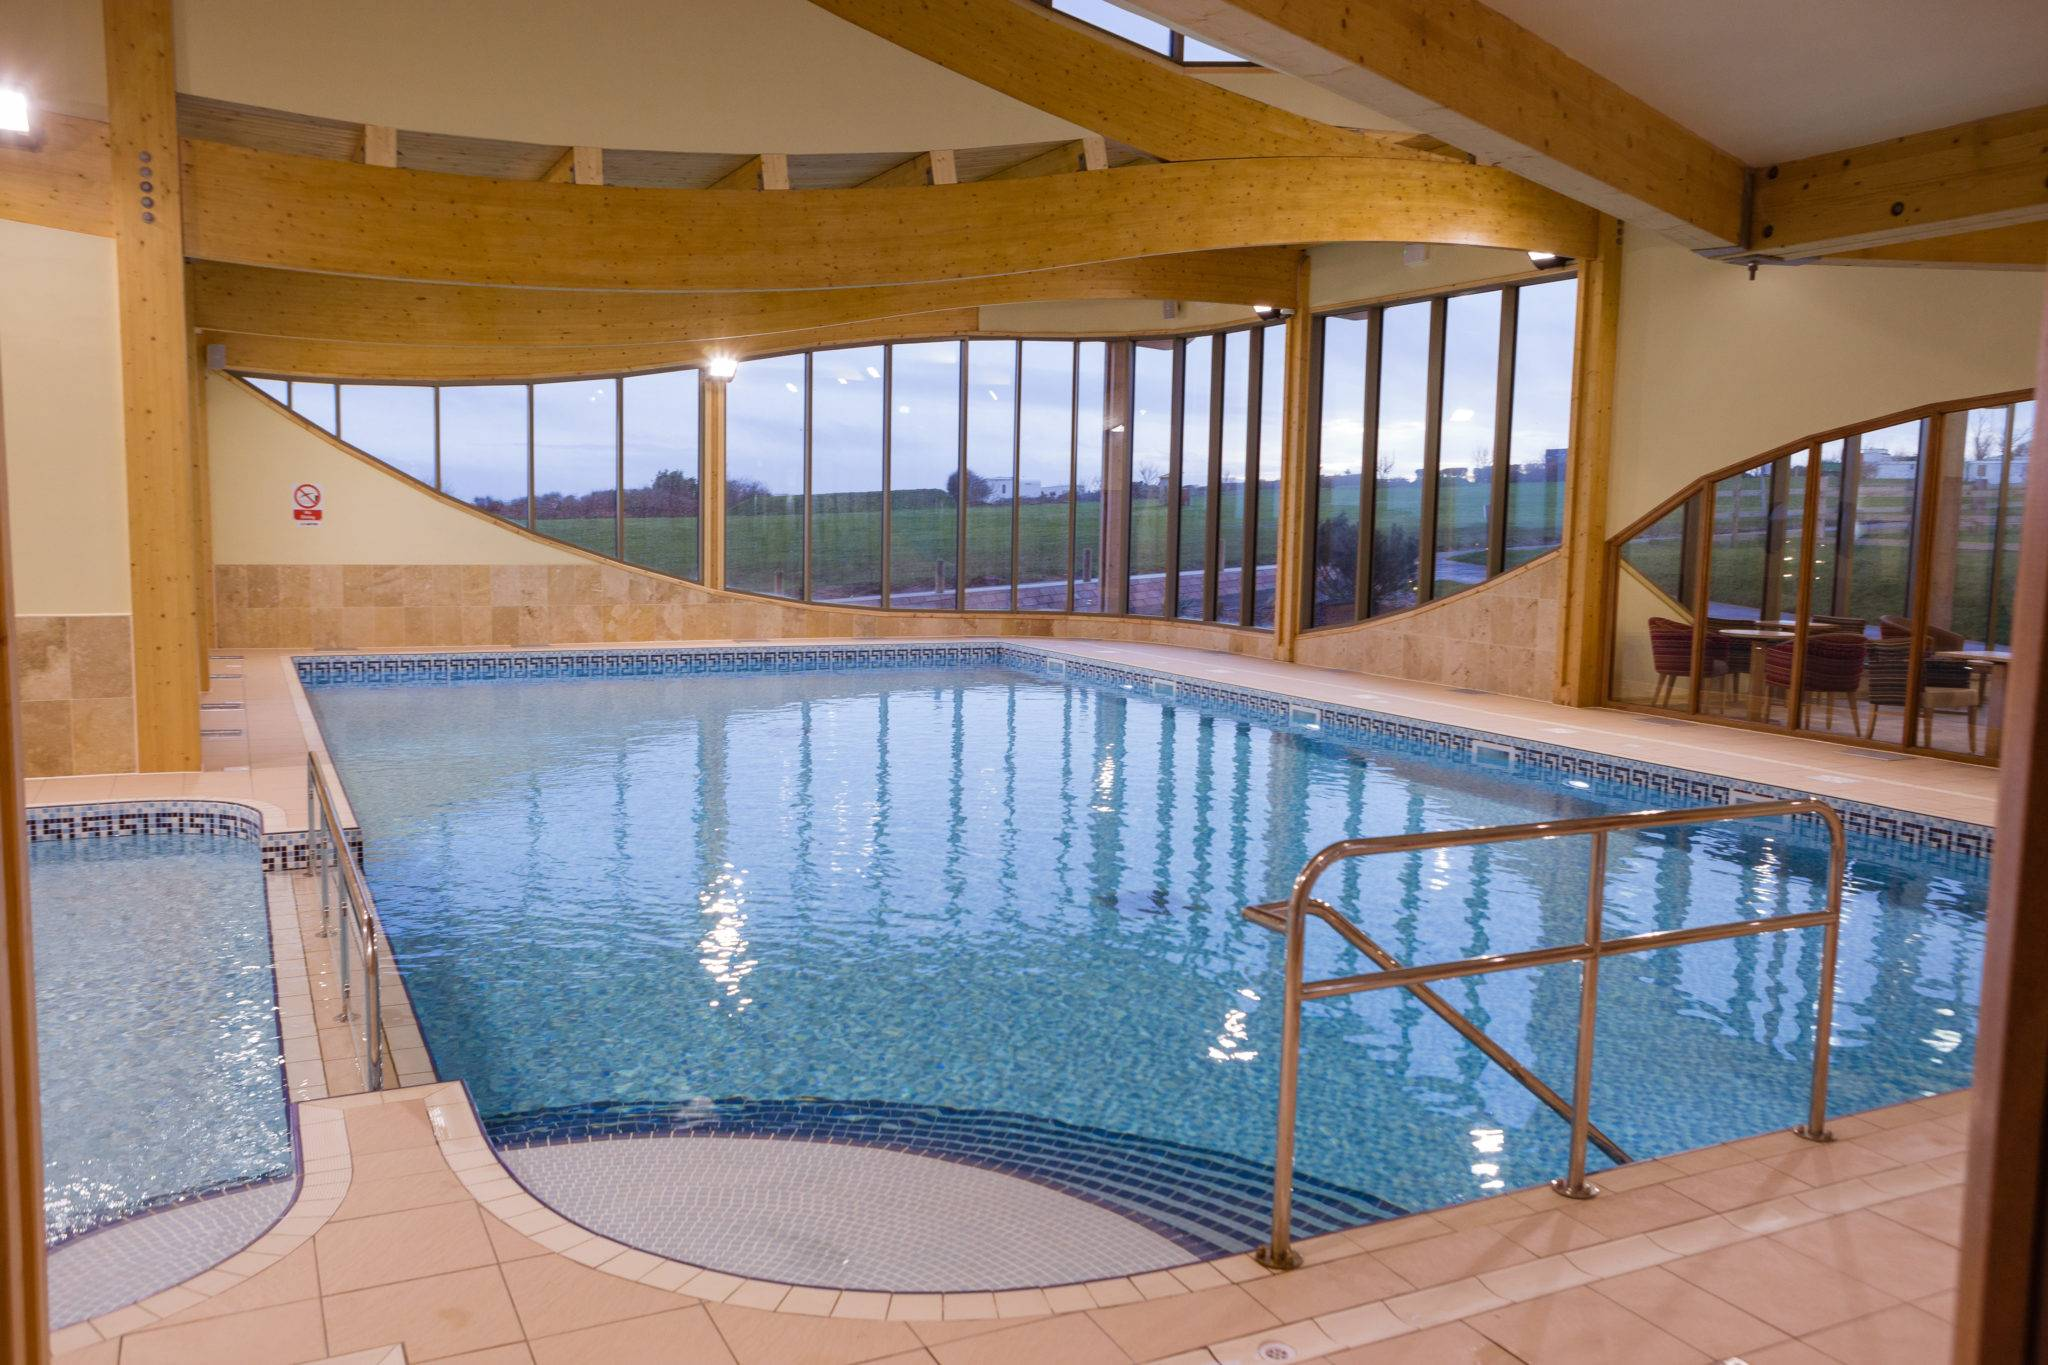 https://silverbay.co.uk/wp-content/uploads/2015/01/silver-bay-holiday-village-anglesey-two-swimming-pools.jpg